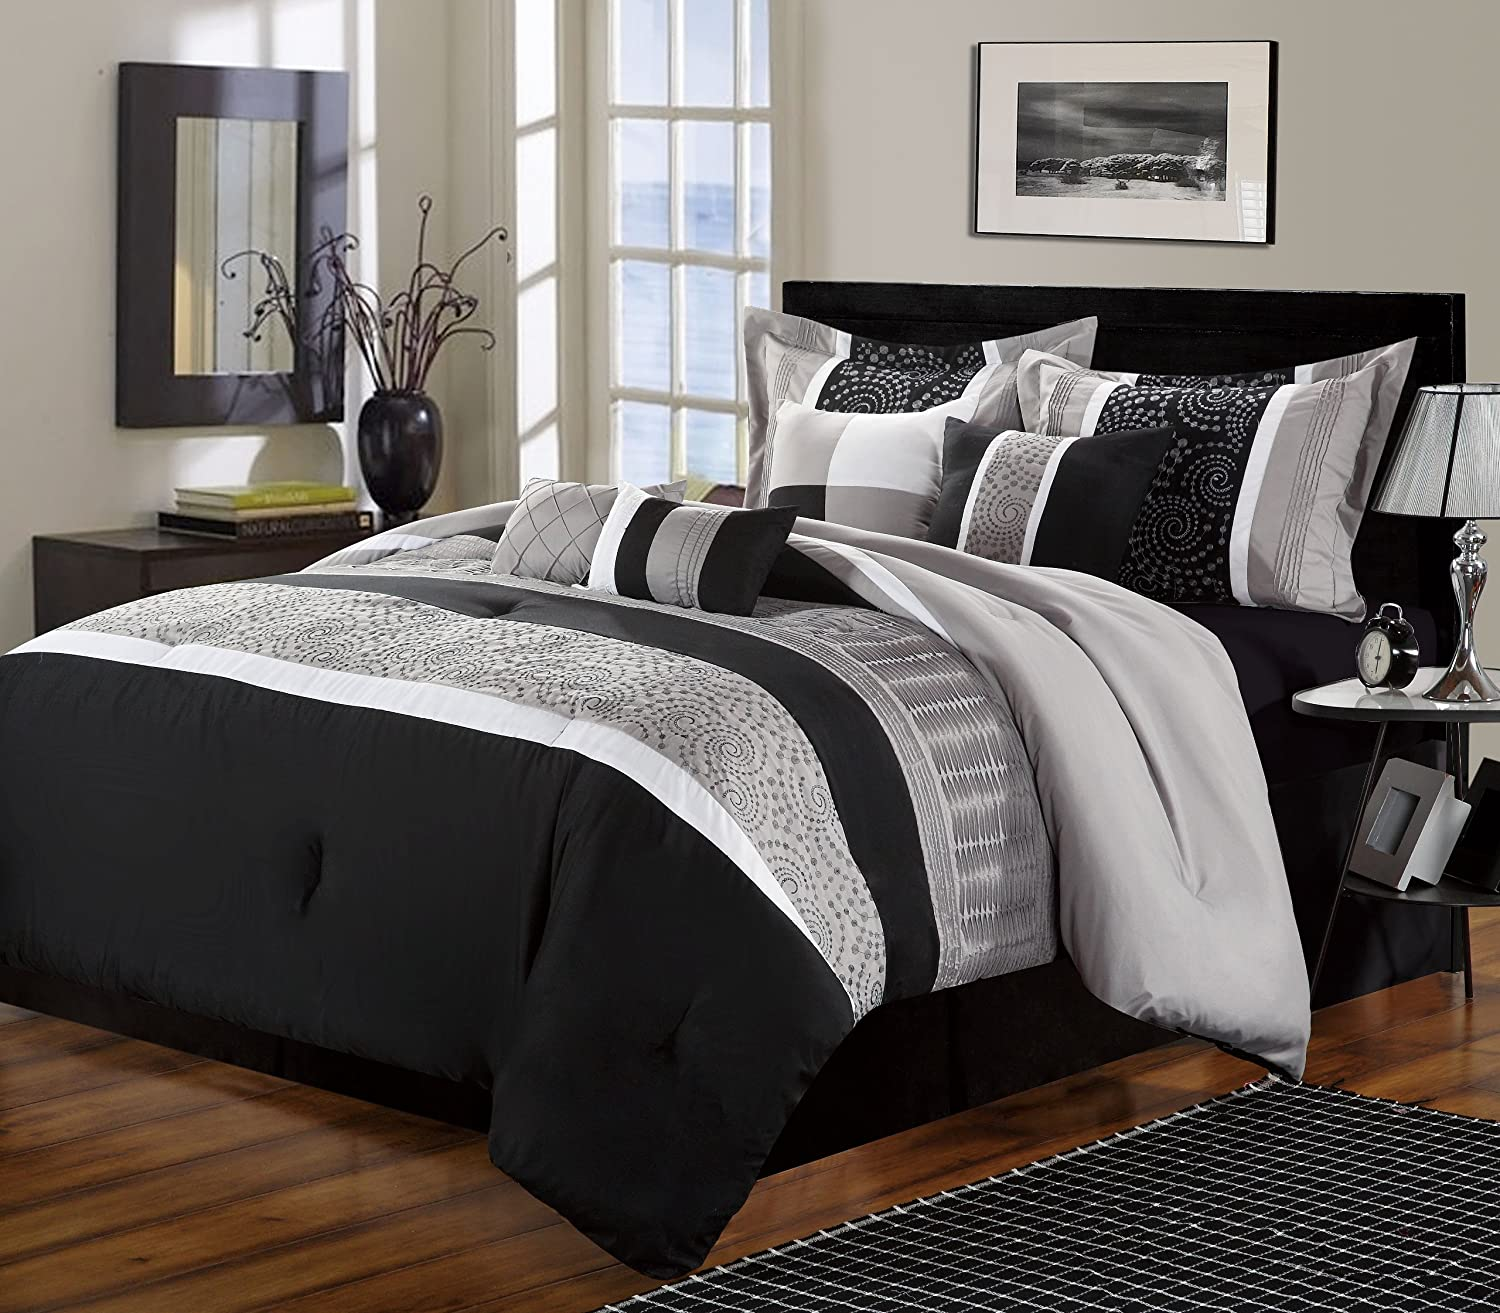 Amazon.com: Chic Home Euphoria 8-Piece Embroidered Comforter Set ...